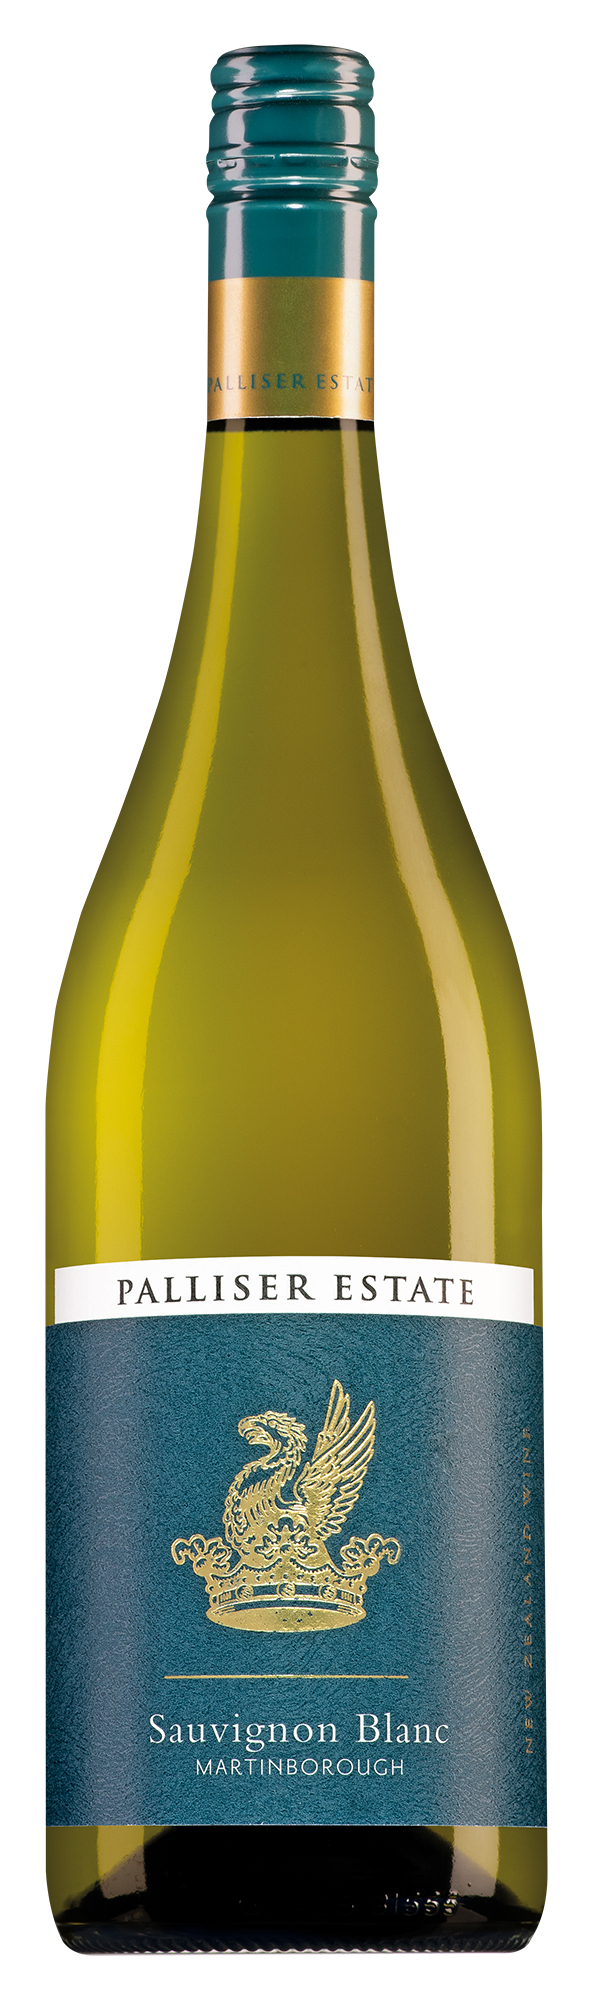 Palliser Estate Martinborough Sauvignon Blanc